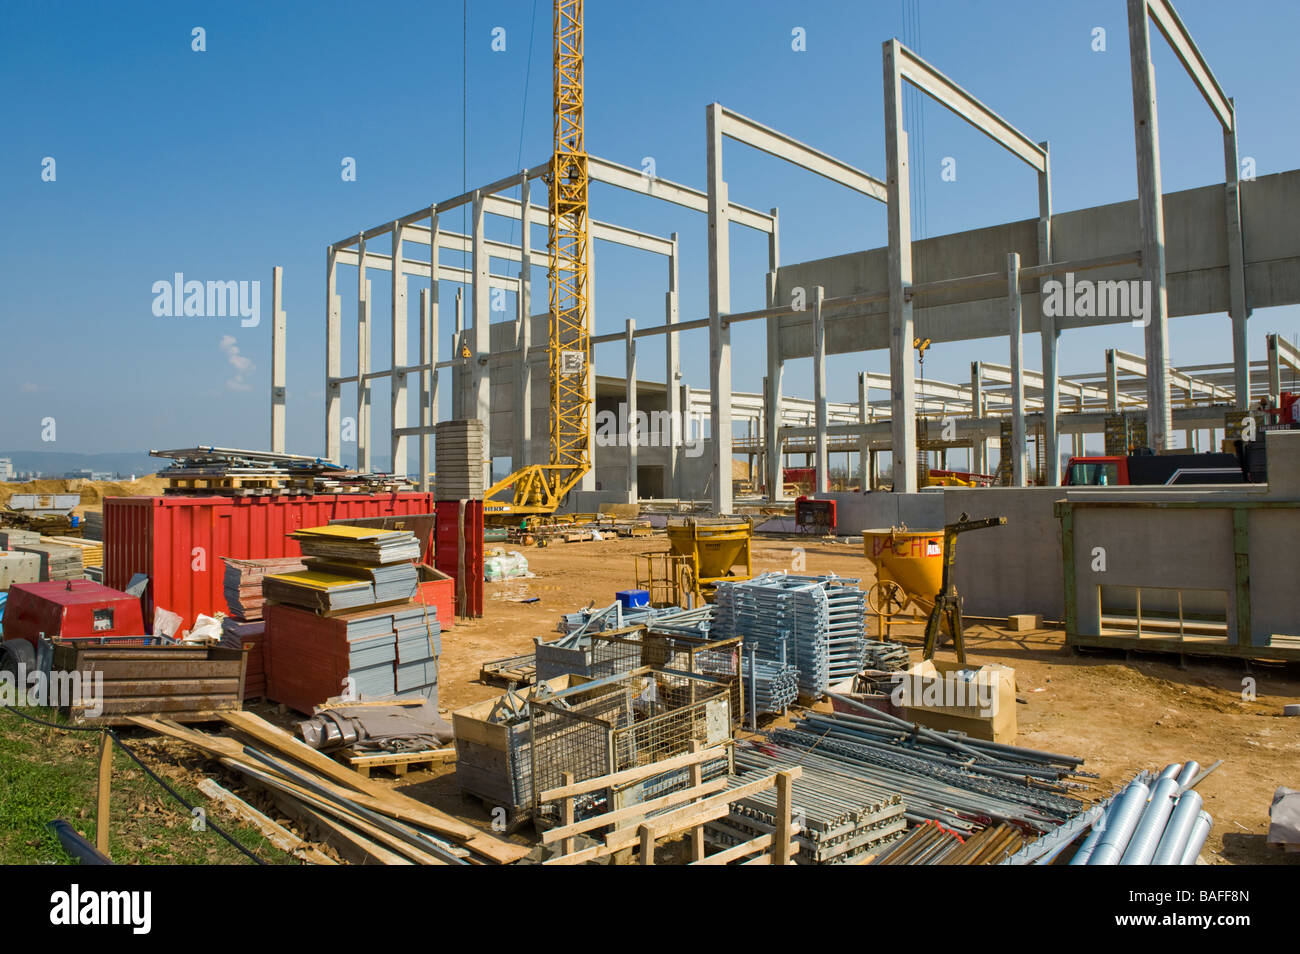 Building Site Construction Site Factory Plant Structure Skeleton